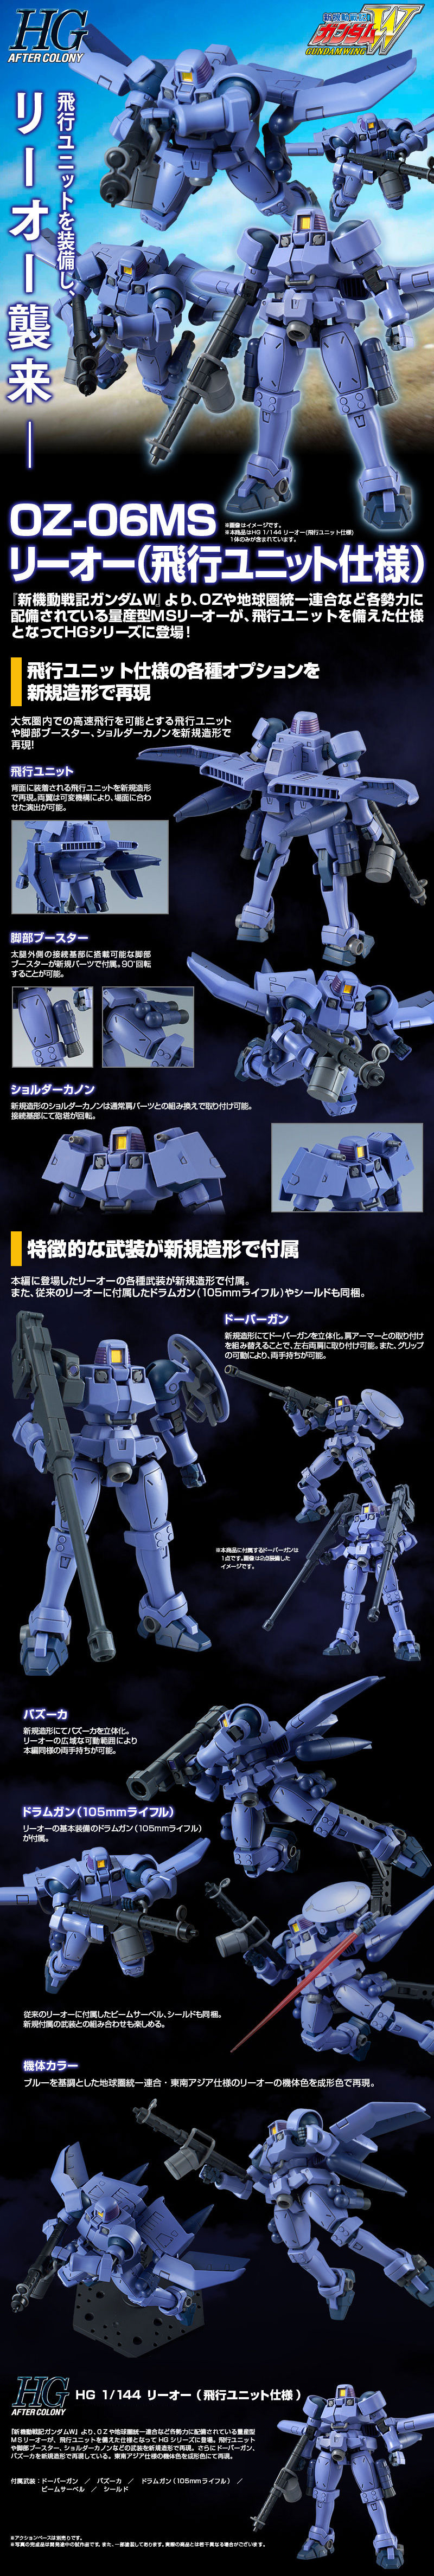 HGAC Leo Flight Unit Type Details